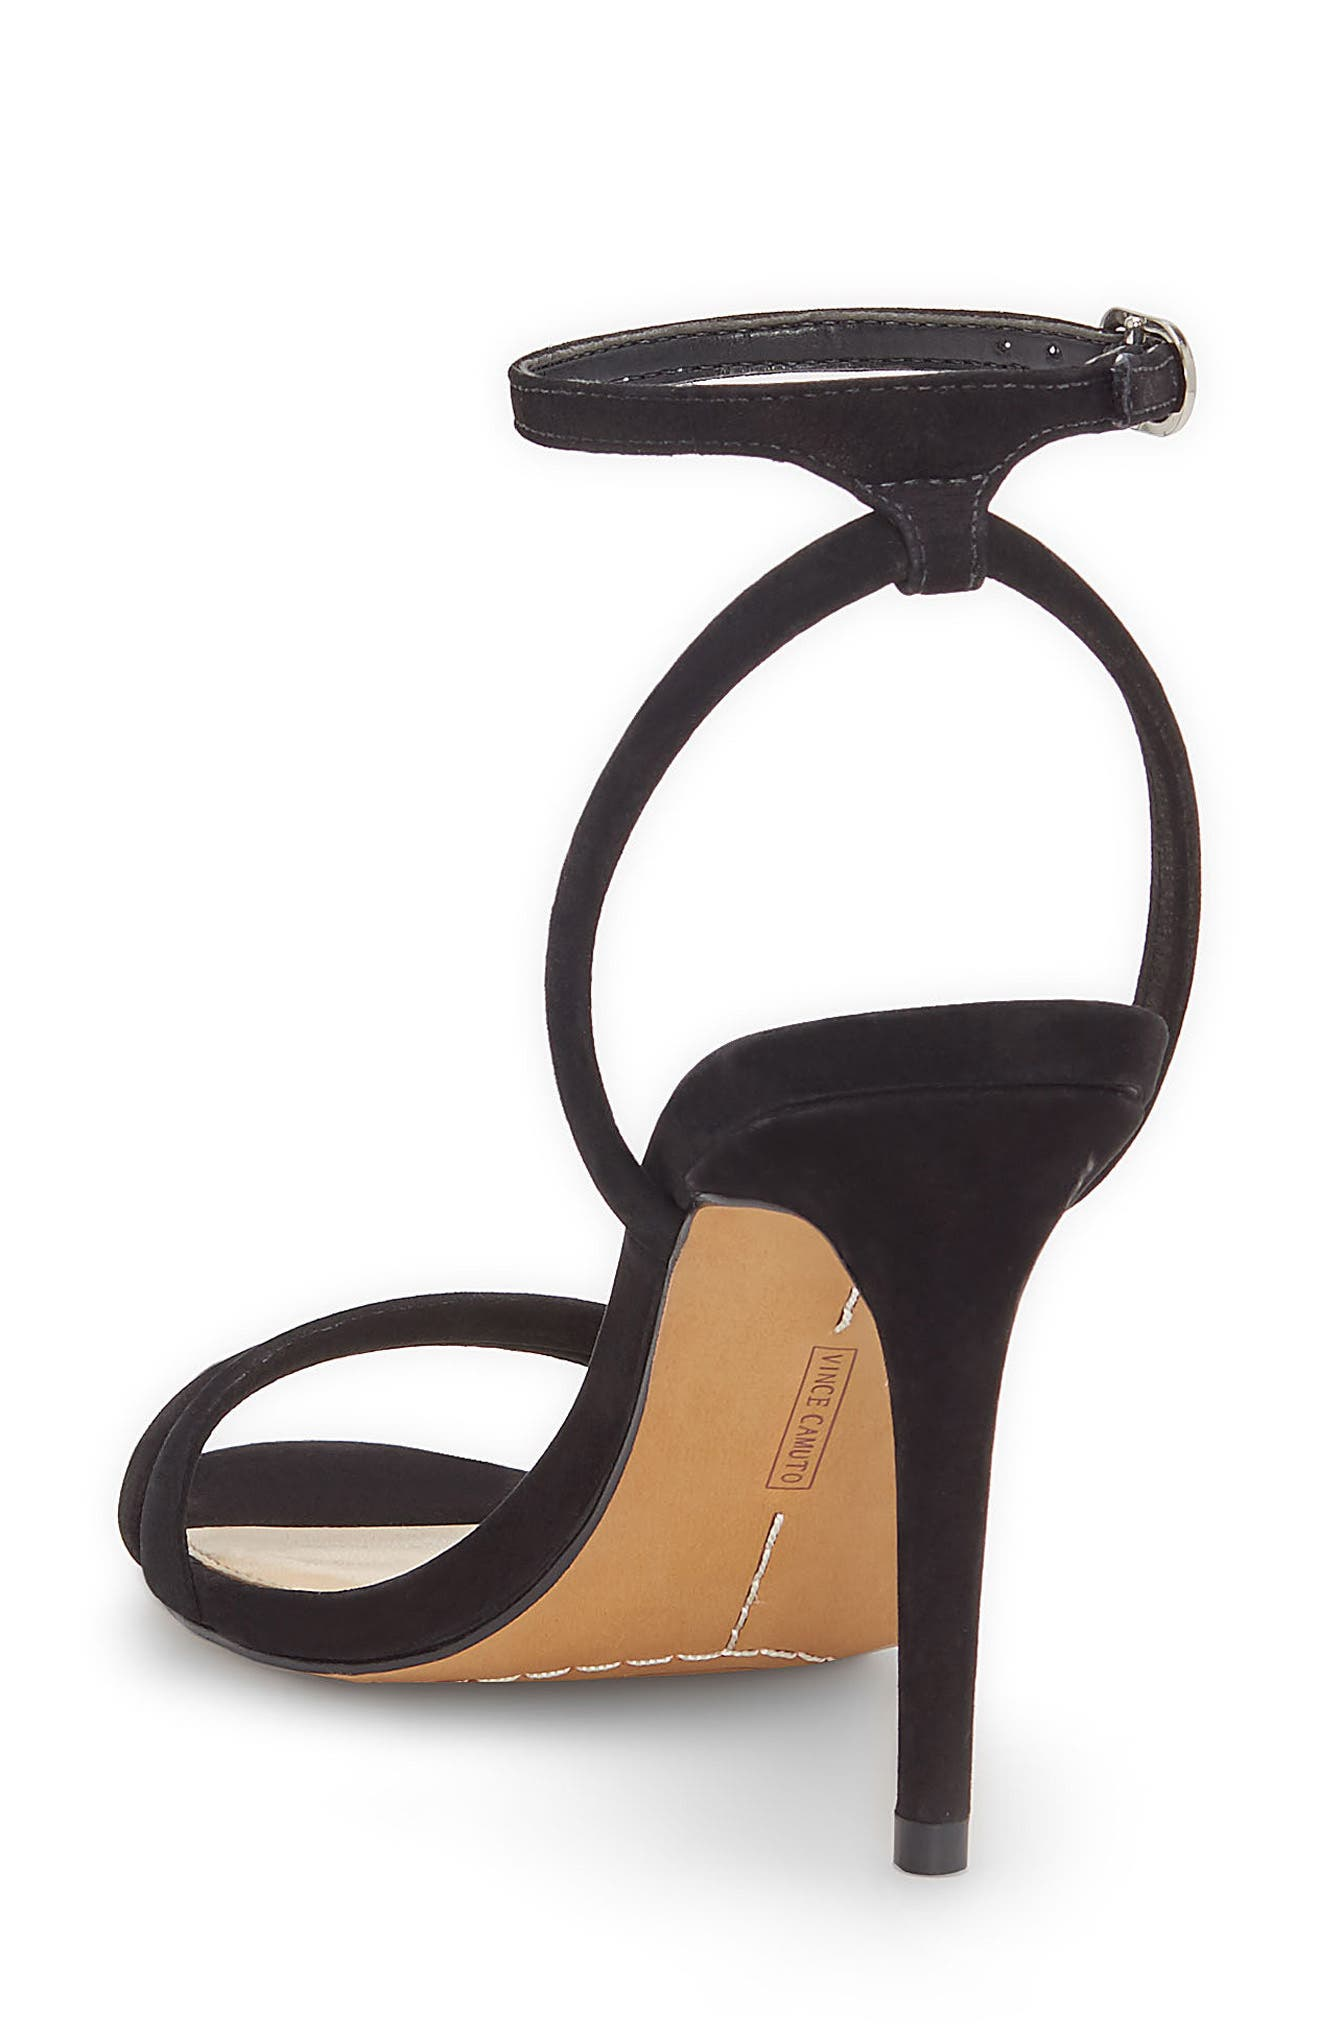 VINCE CAMUTO,                             Kareenat Sandal,                             Alternate thumbnail 2, color,                             001